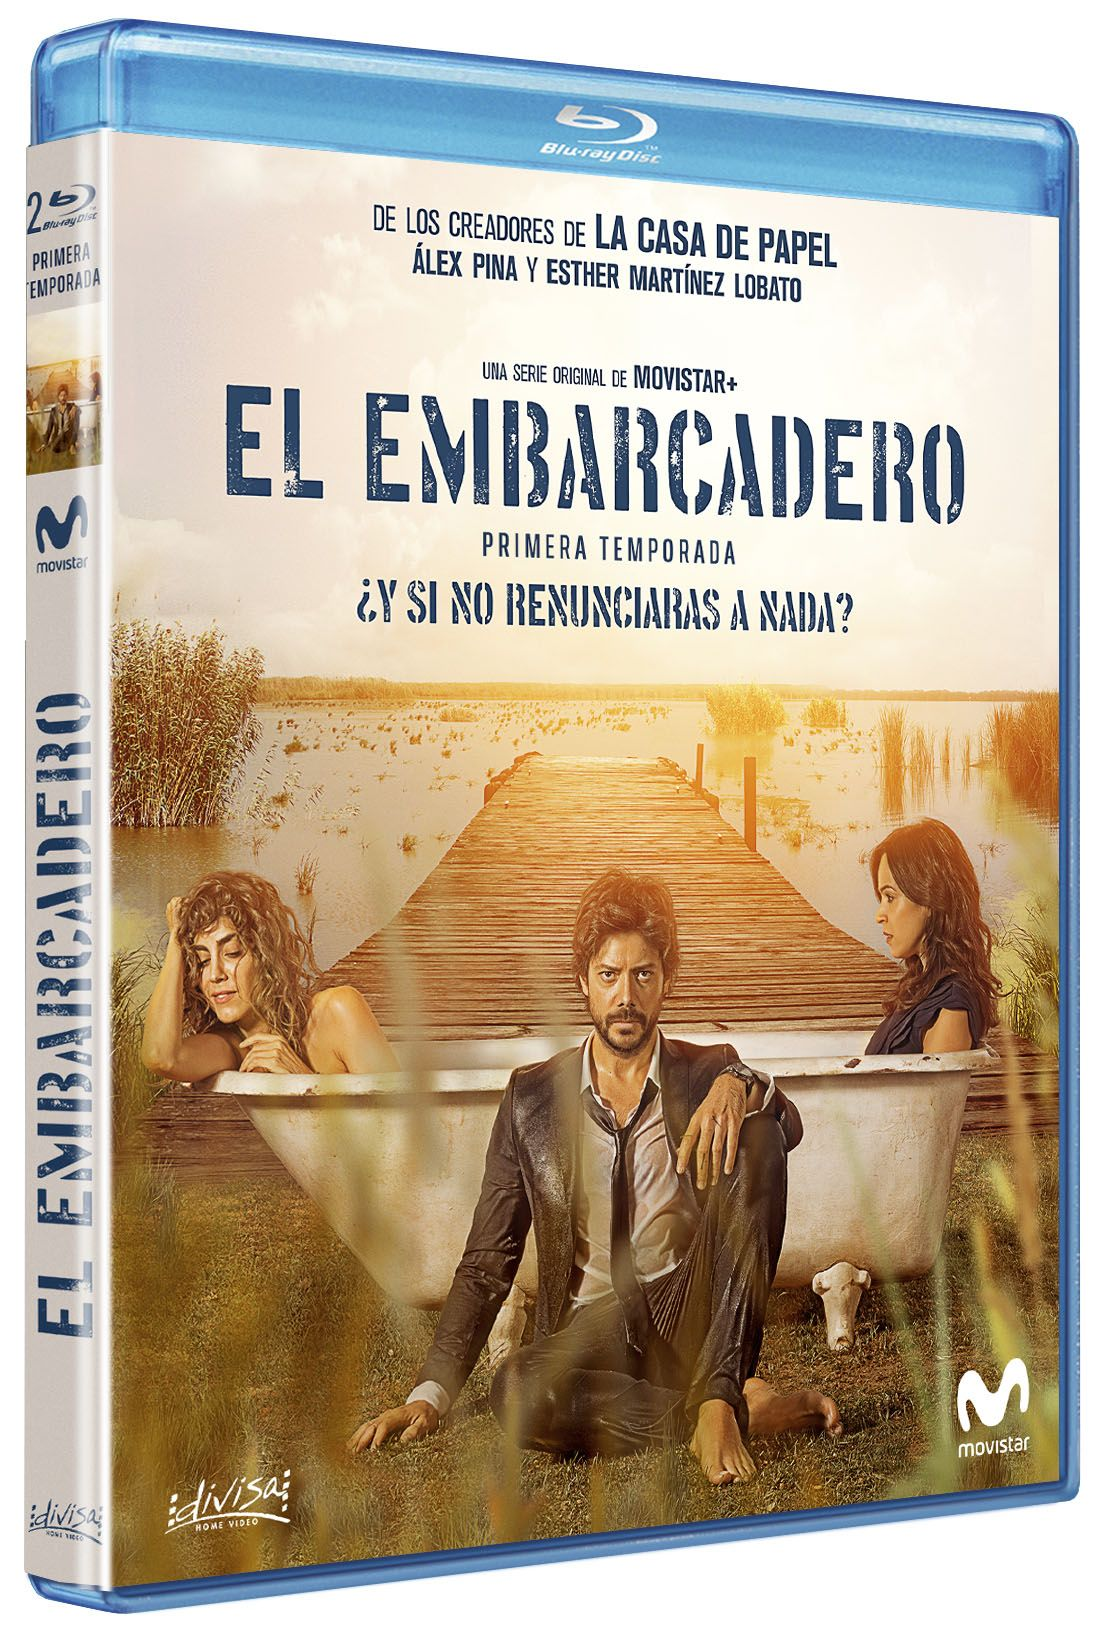 el embarcadero - blu ray - temporada 1-8421394411654